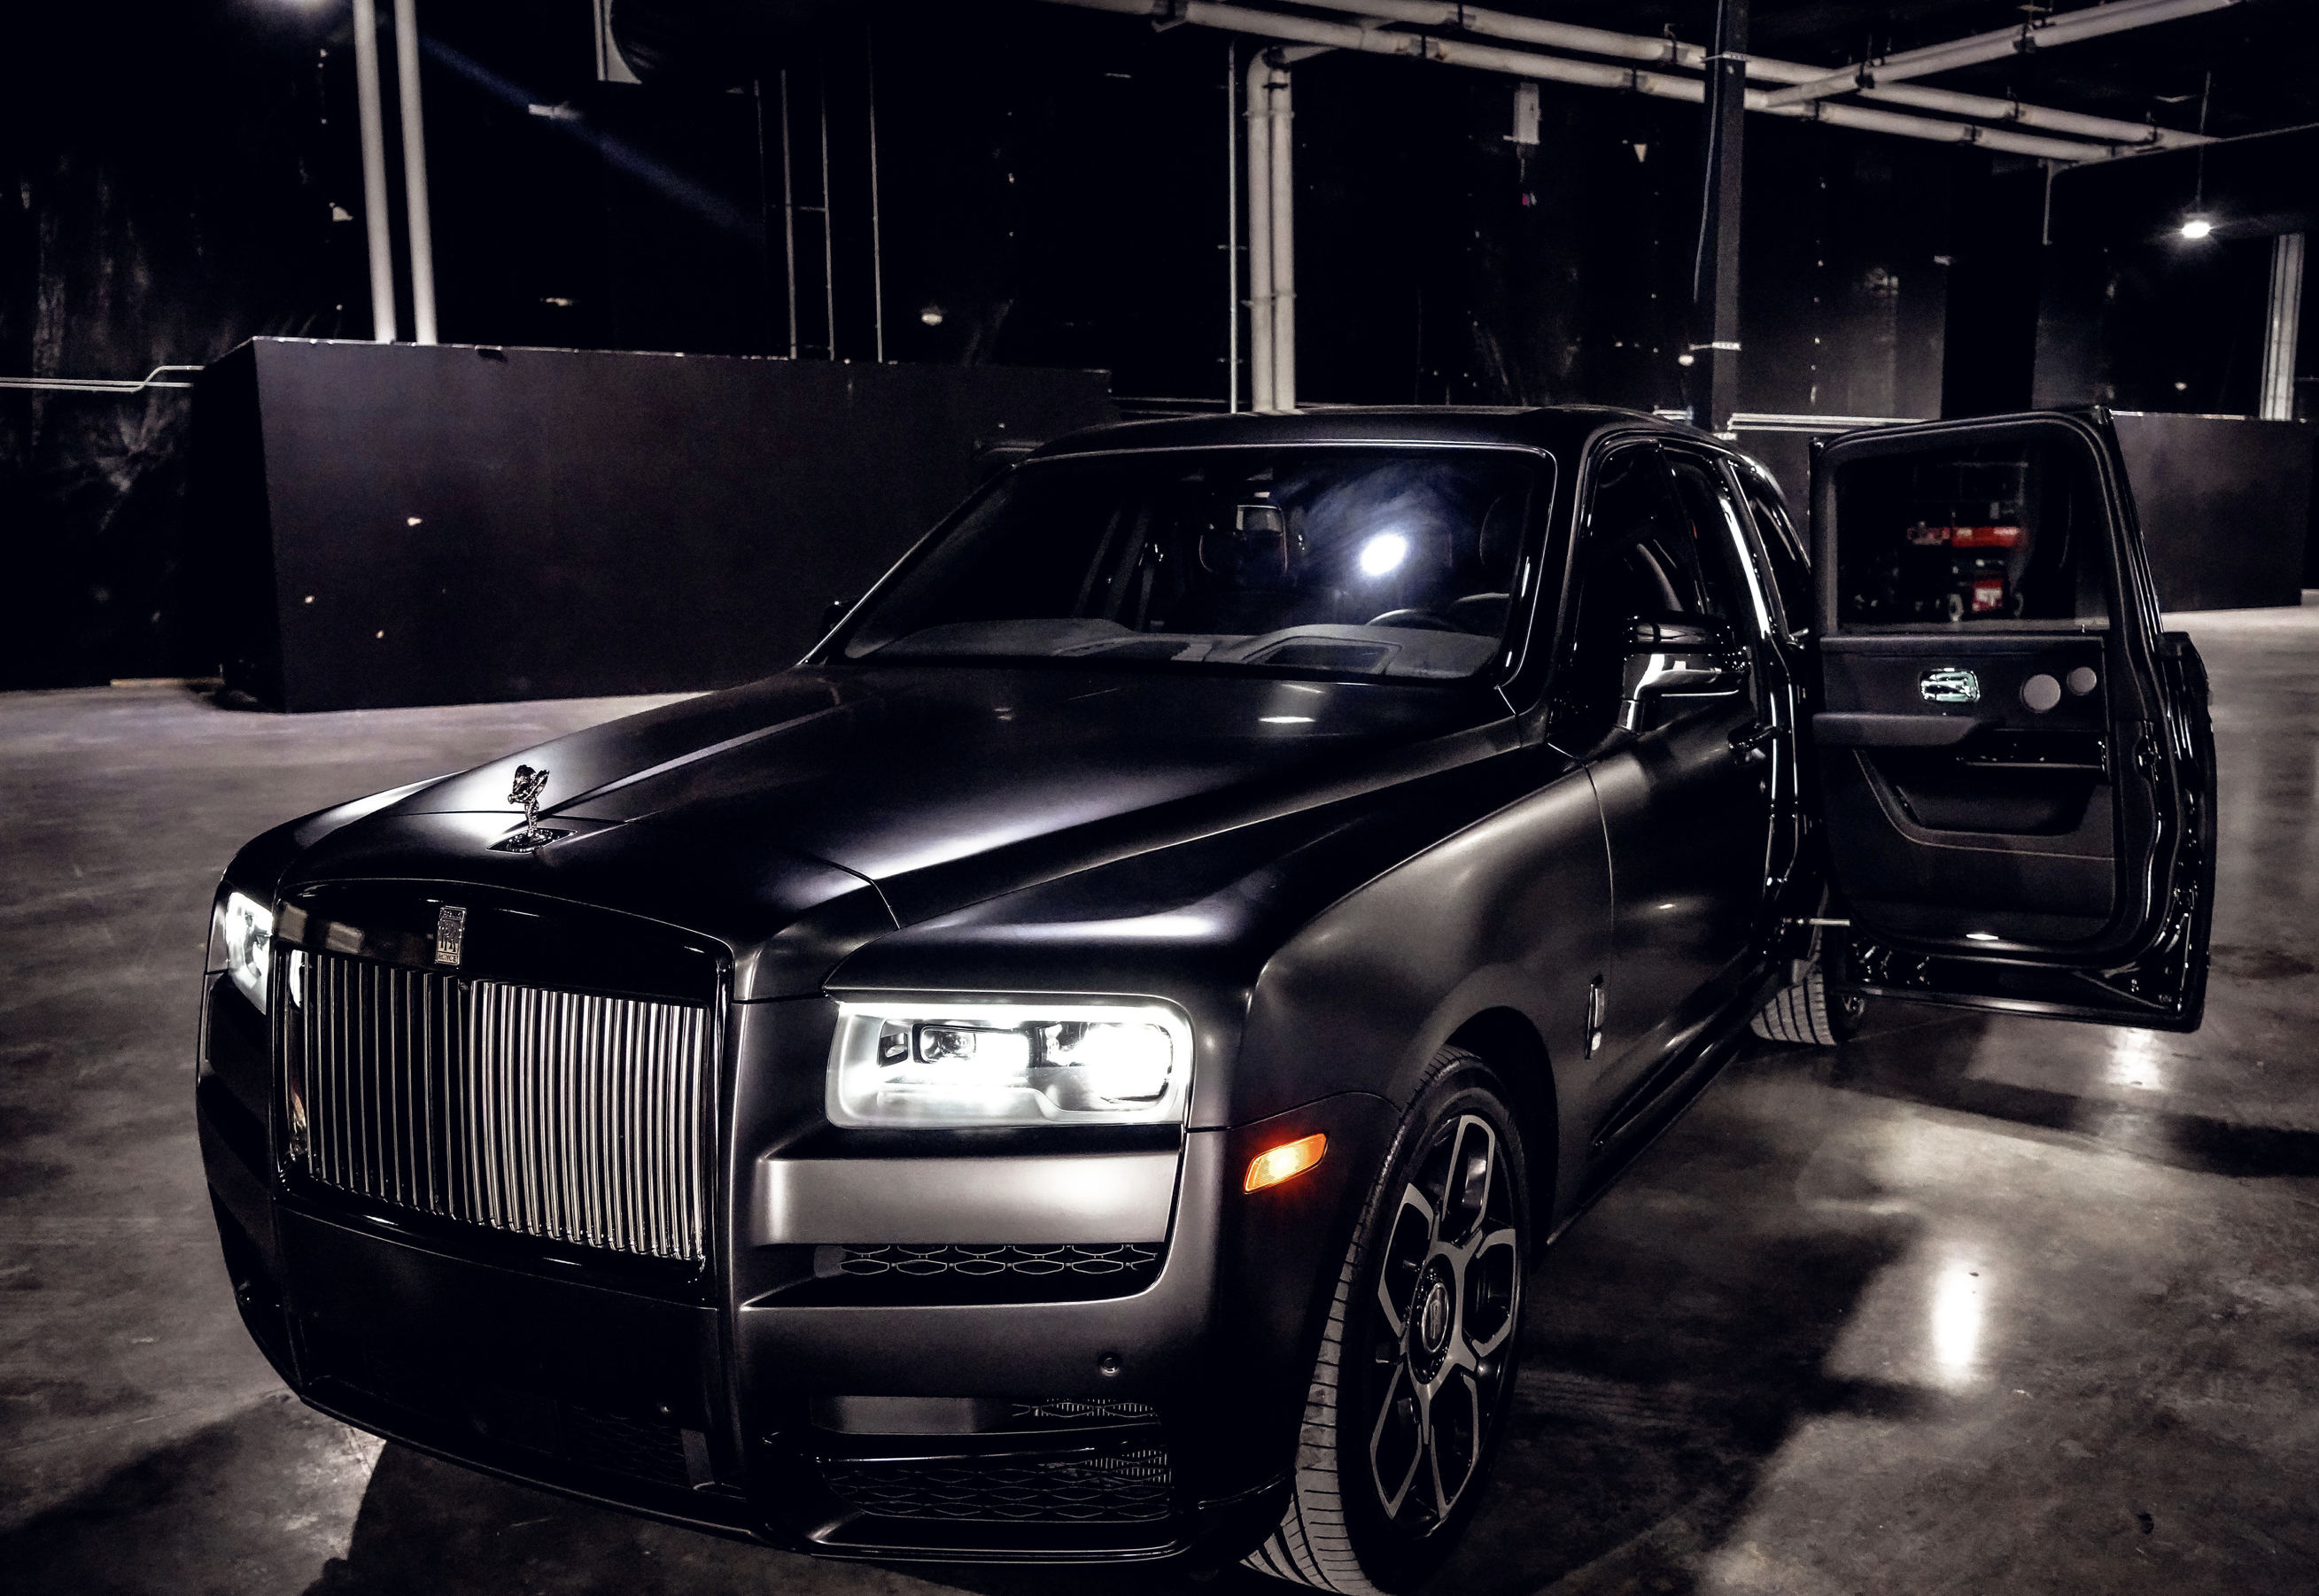 Image #8 of our  Rolls Royce Cullinan (Flat Black)    In Miami Fort Lauderdale Palm Beach South Florida